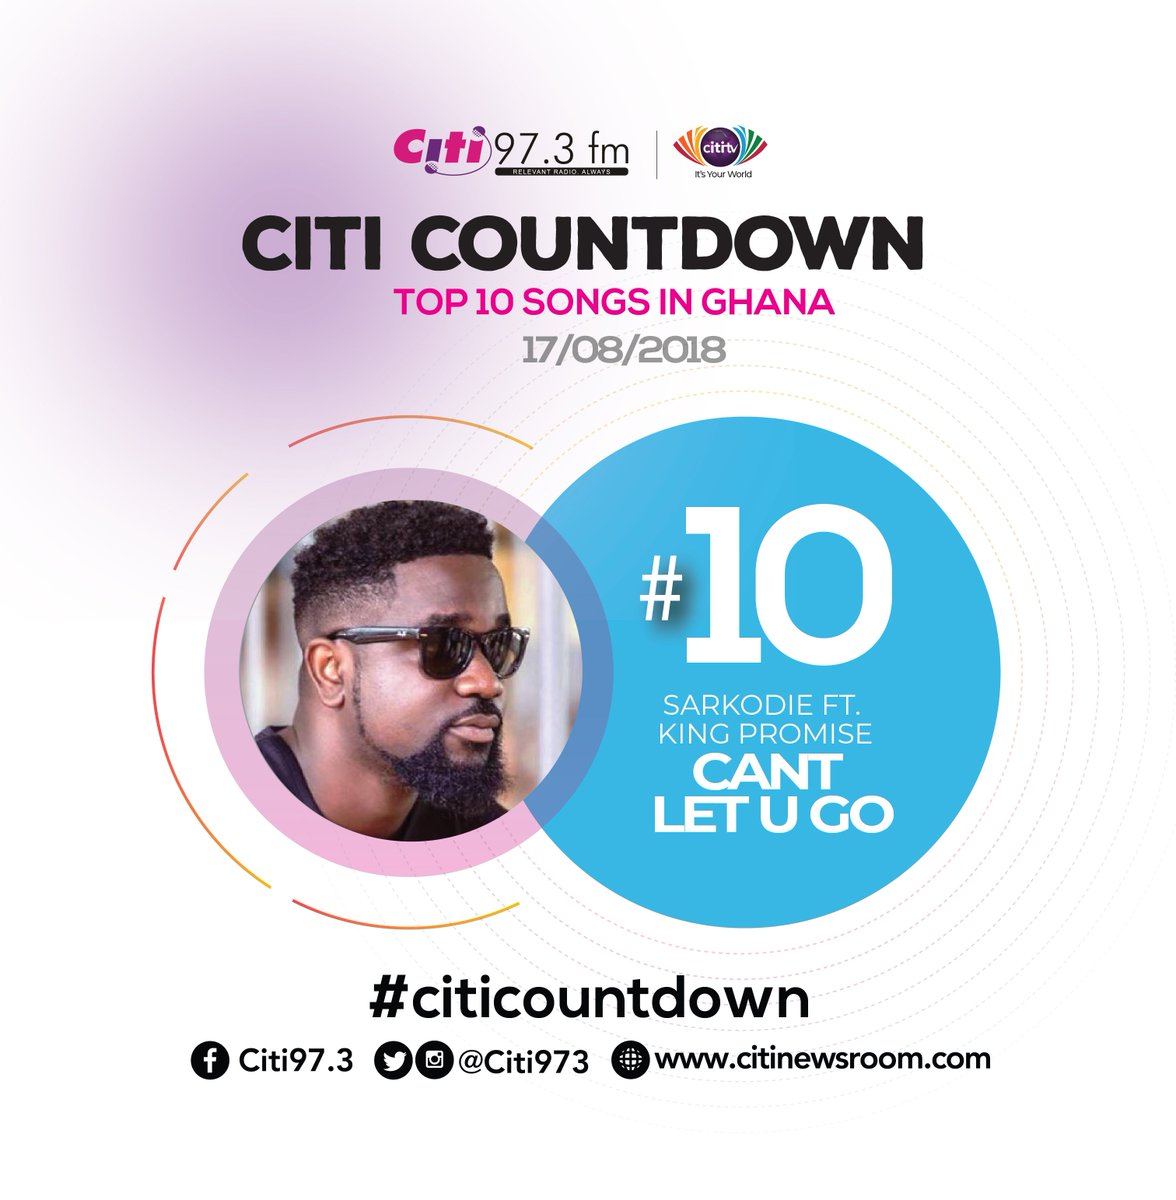 Let's get on the chart this week and it's the King @sarkodie at Number 10  with Can't Let You Go. He features @IamKingPromise on this one  #CitiCountdown ...